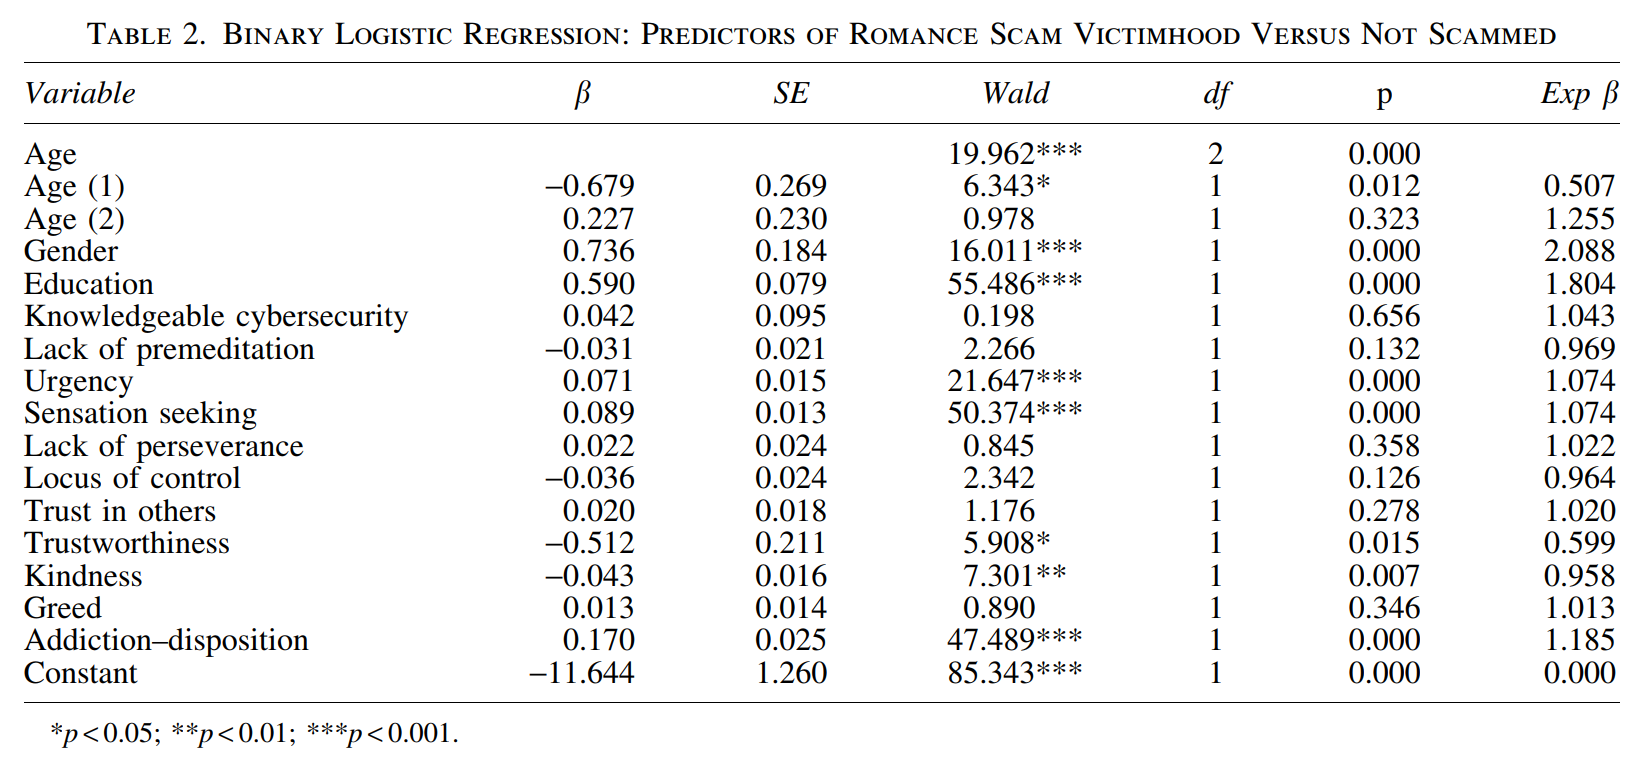 Do You Love Me? Psychological Characteristics of Romance Scam Victims 2